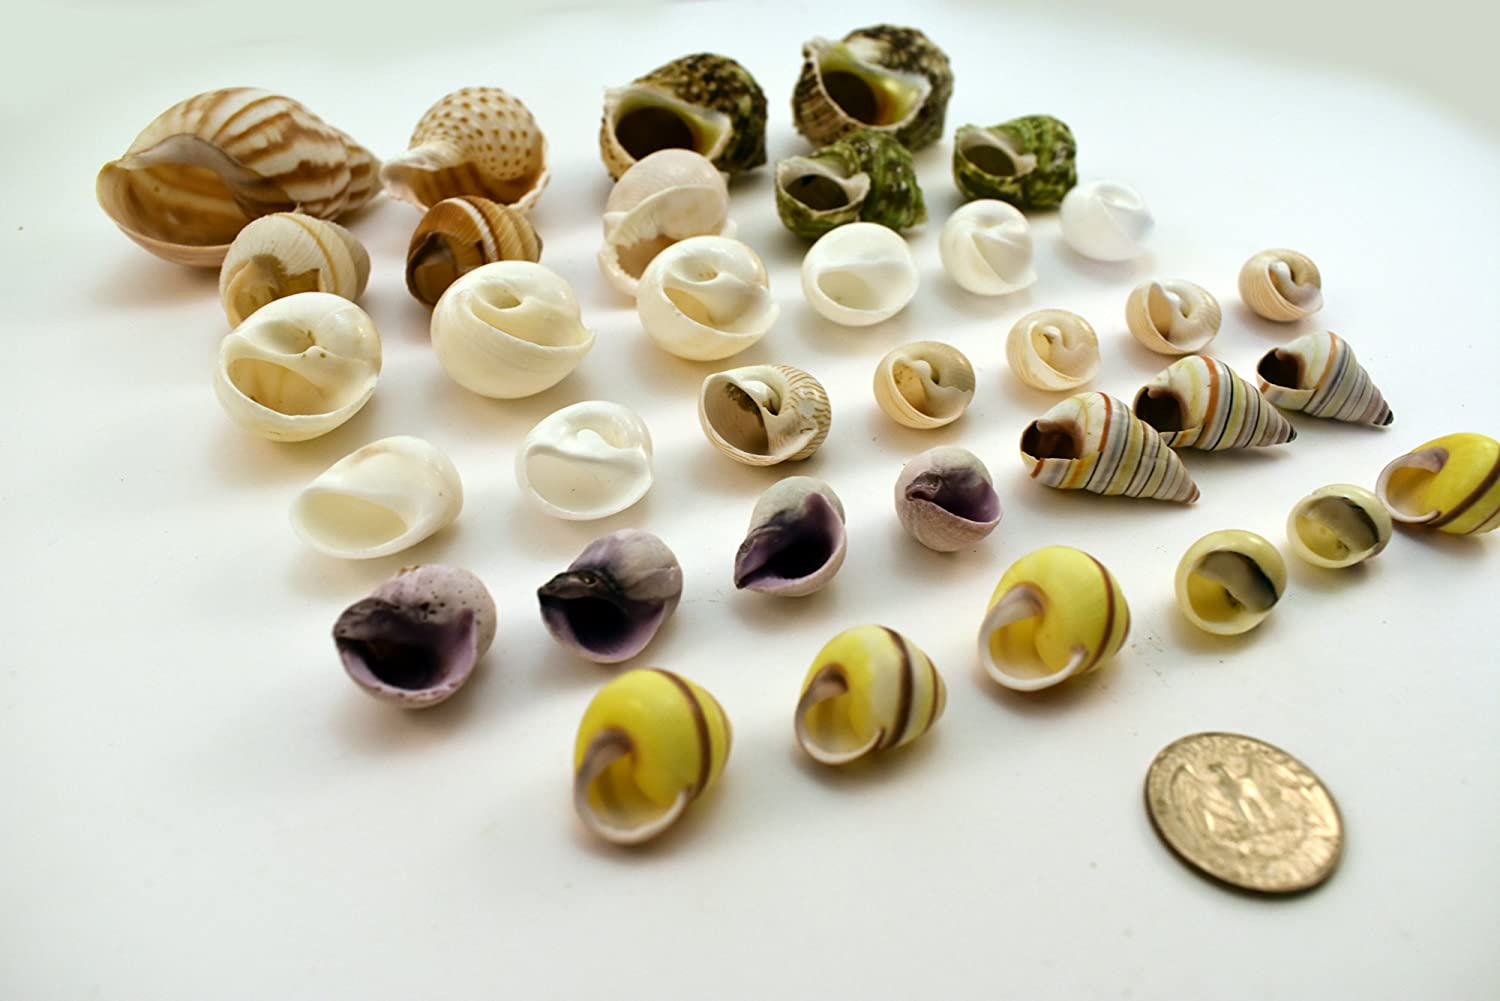 Select 35 Hermit Crab Shells Assorted Changing Seashells SMALL 1/2-2 Size (opening size 1/4 - 1) Beautiful Florida Shells and Gifts